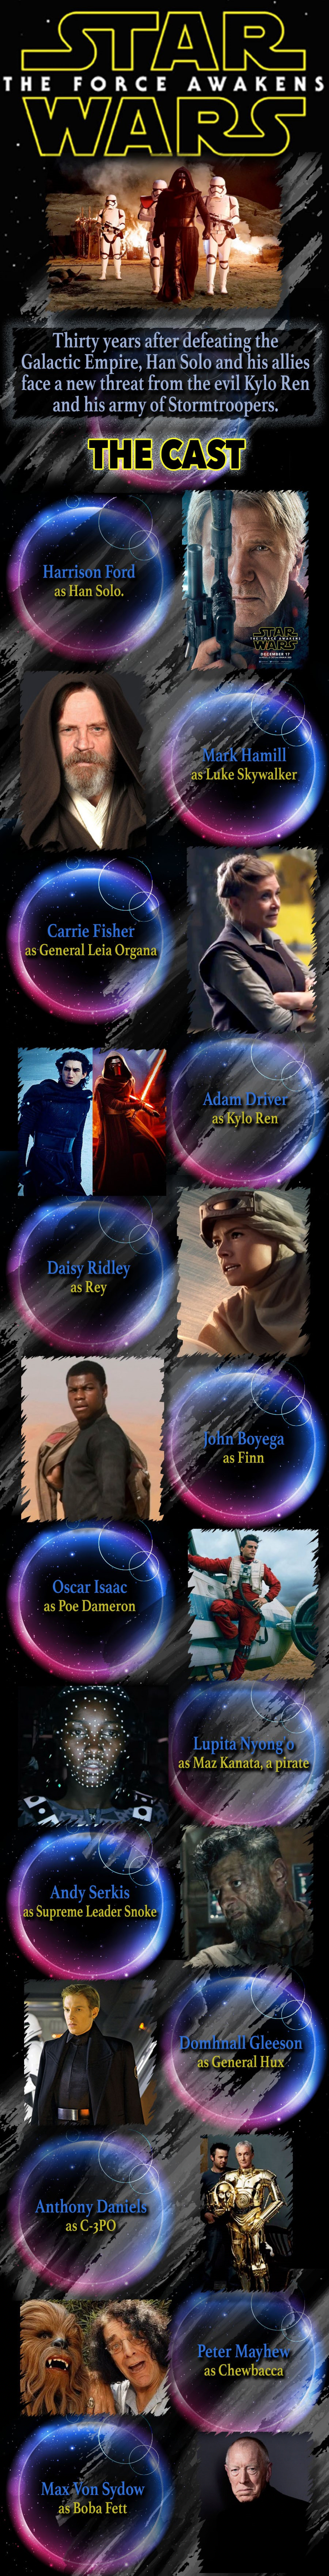 Star Wars-The force awakens Infographic